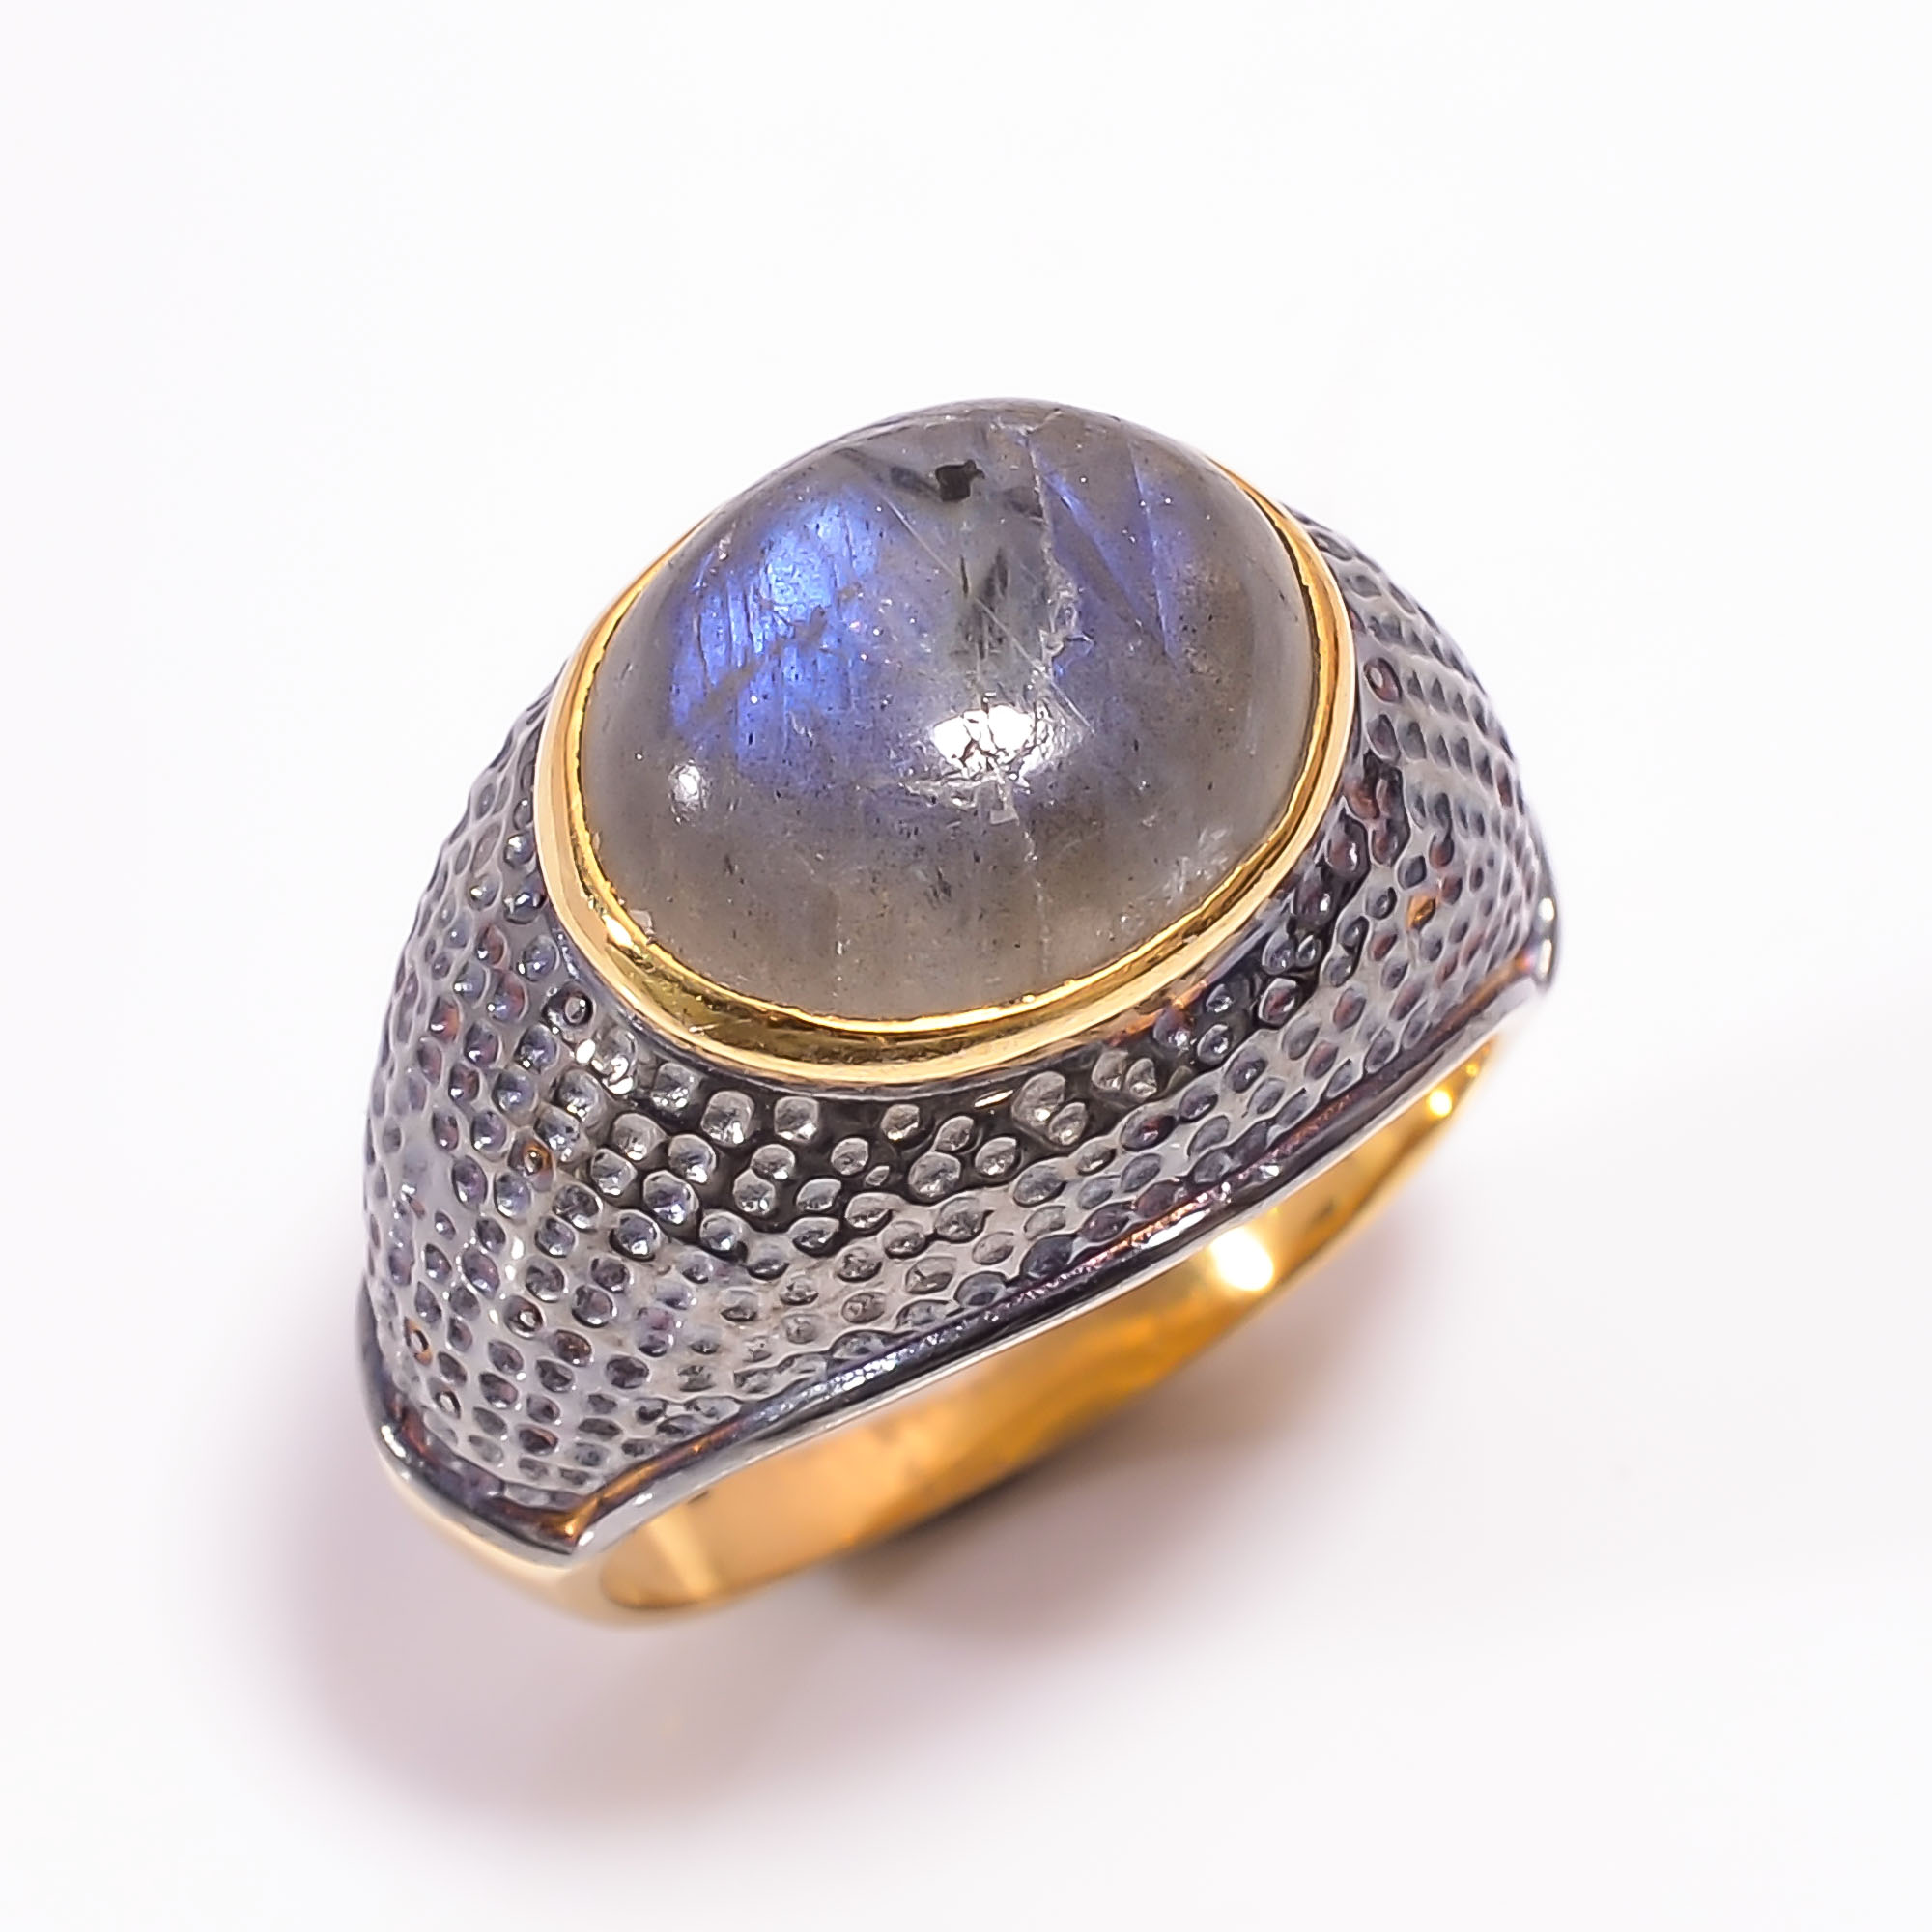 925 Sterling Silver Gold Plated & Black Rhodium Two Tone Labradorite Ring Size US 7